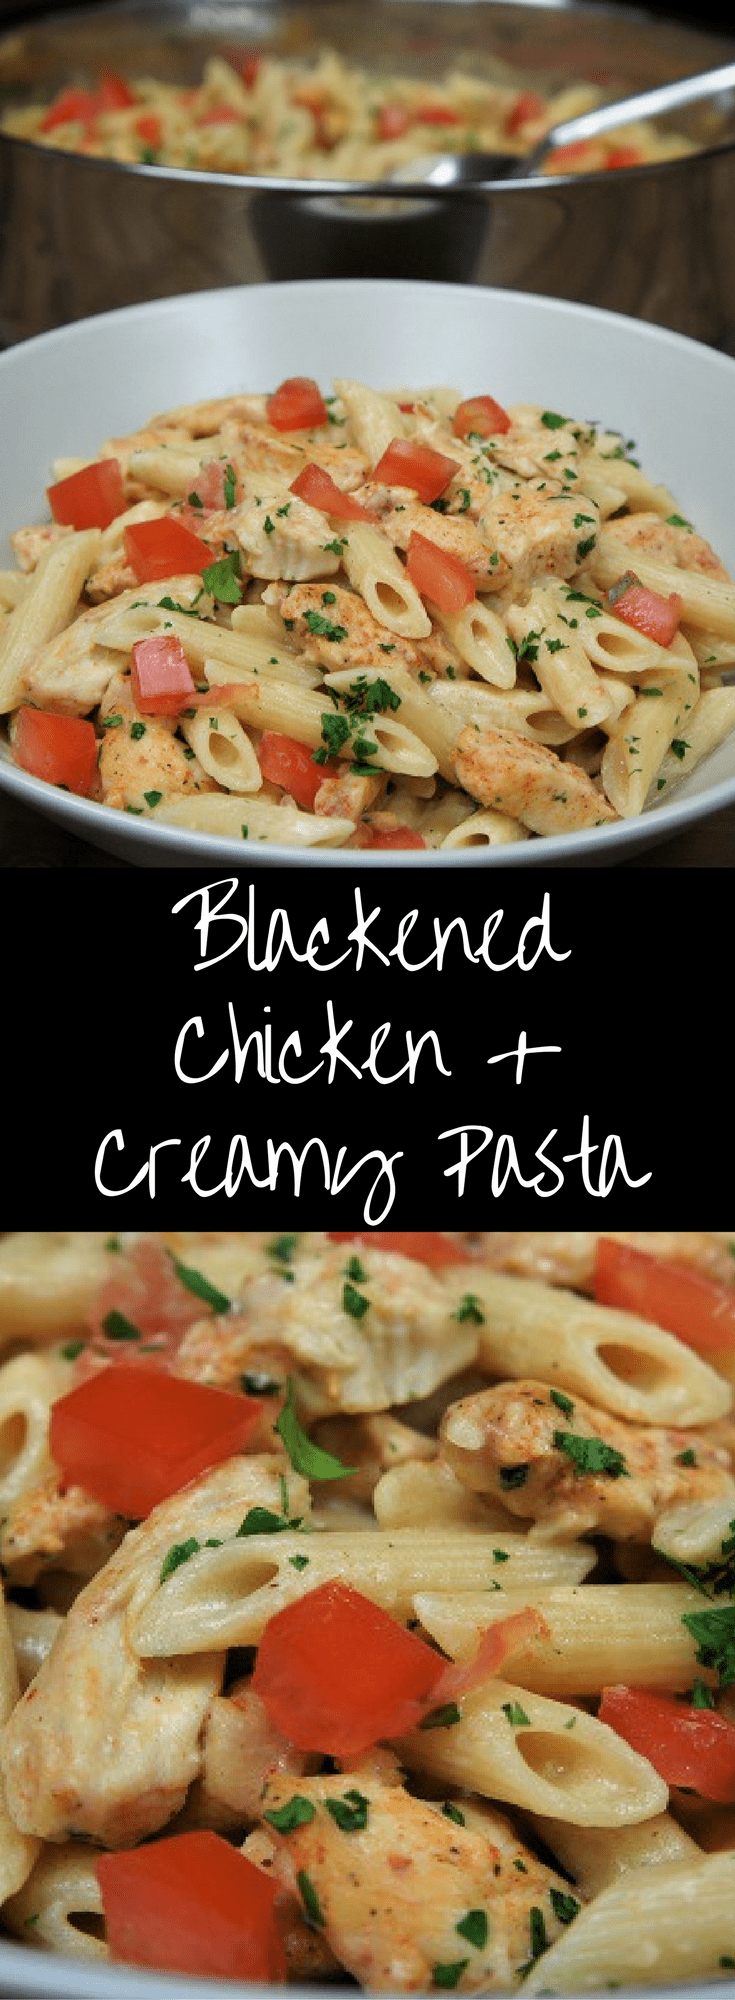 This blackened chicken & creamy pasta is a quick, affordable and delicious dinner your family will love. #chickenrecipes #creamypasta #pasta #blackenedchicken #easyrecipes #easydinnerrecipes #creamychickenandpasta